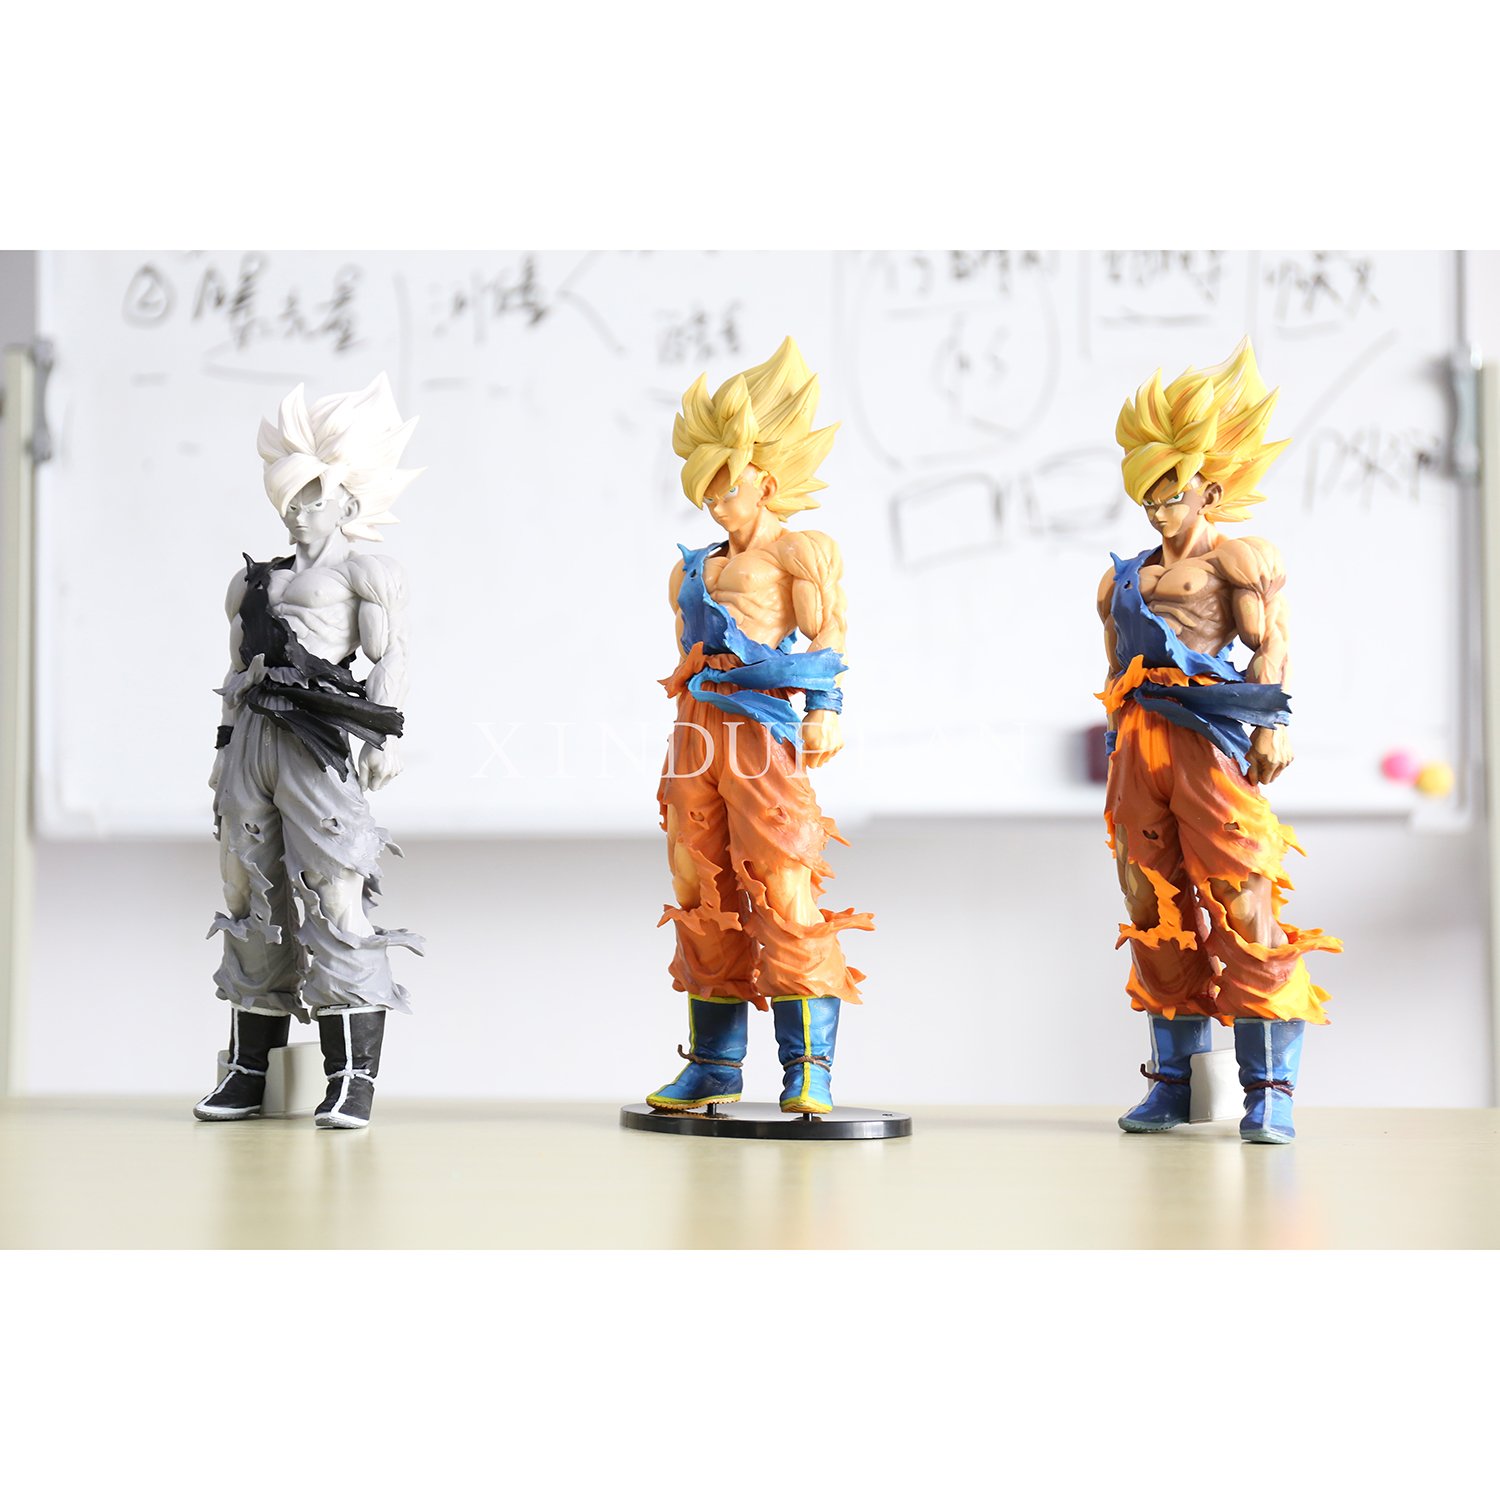 XINDUPLAN Dragon Ball Z Dragonball Son Goku MSP Kakarotto Super Saiyan Battle Damage Action Figure Toy 36cm Large PVC Model 0939 6pcs set dragon ball z super saiyan pvc action figures dragonball z son goku vegeta battle ver figure toys collection model toy